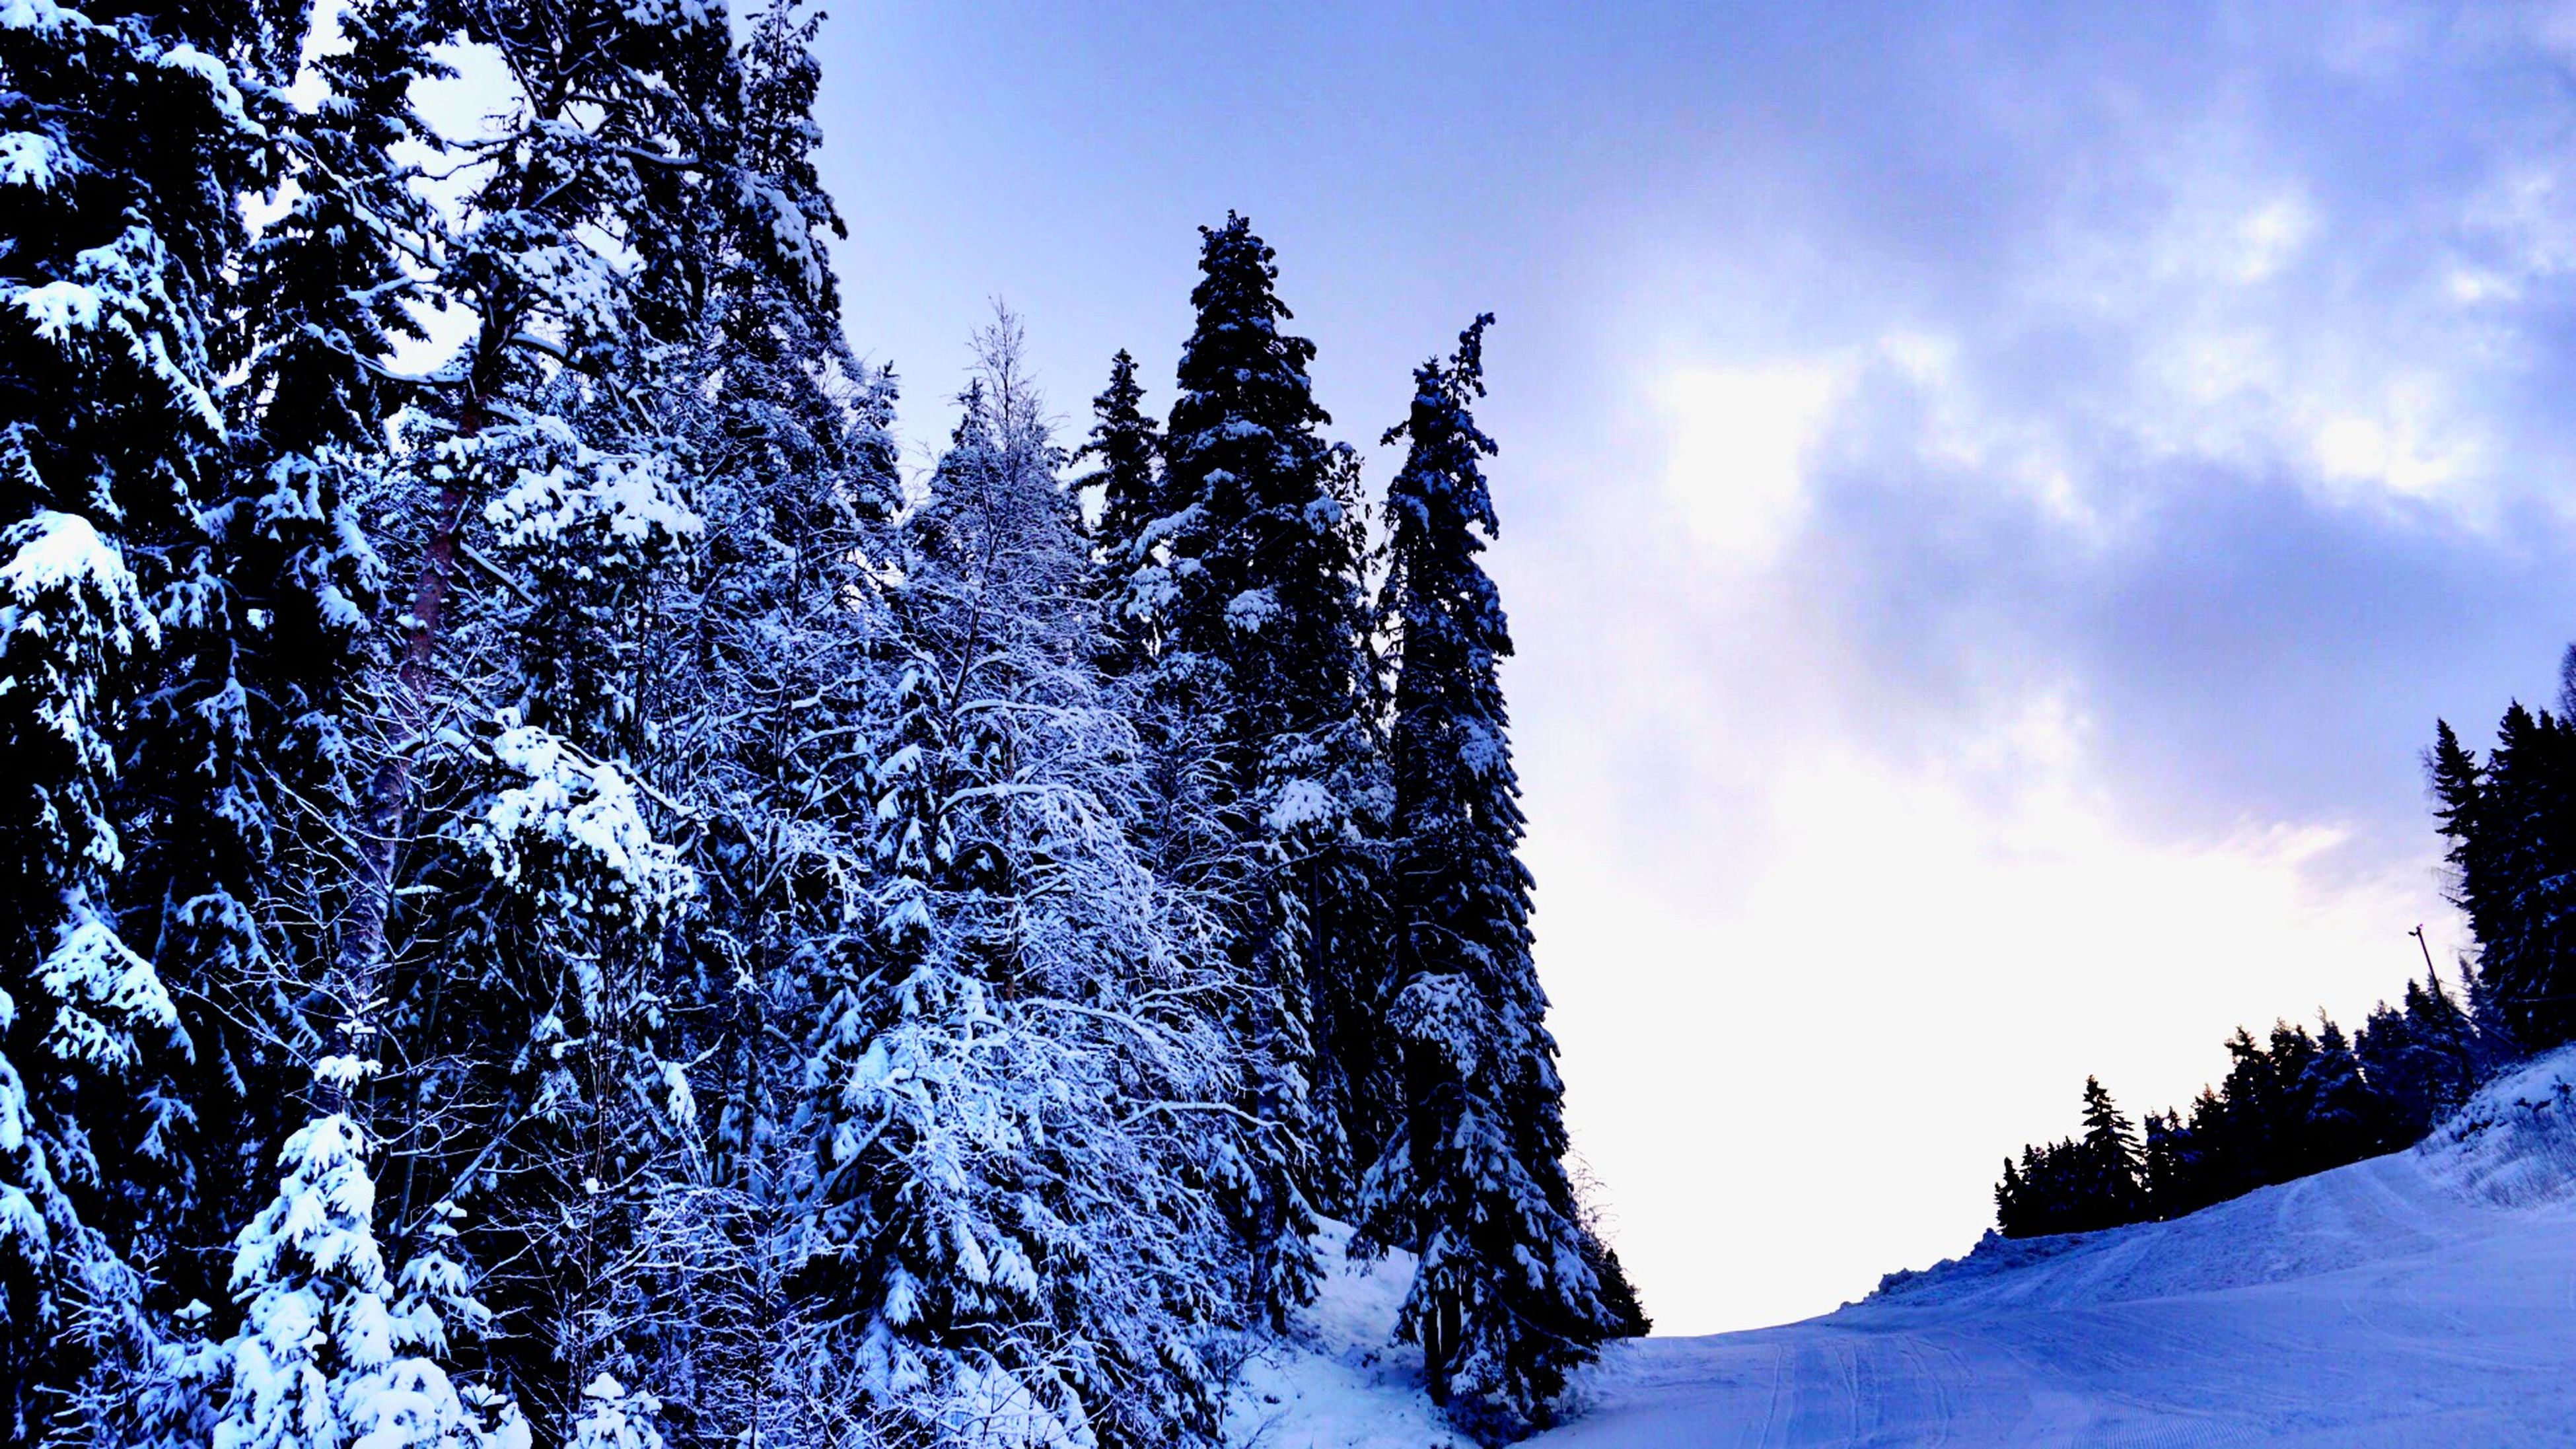 snow, winter, cold temperature, season, tree, beauty in nature, tranquility, weather, low angle view, sky, tranquil scene, nature, scenics, covering, white color, blue, snowcapped mountain, frozen, mountain, outdoors